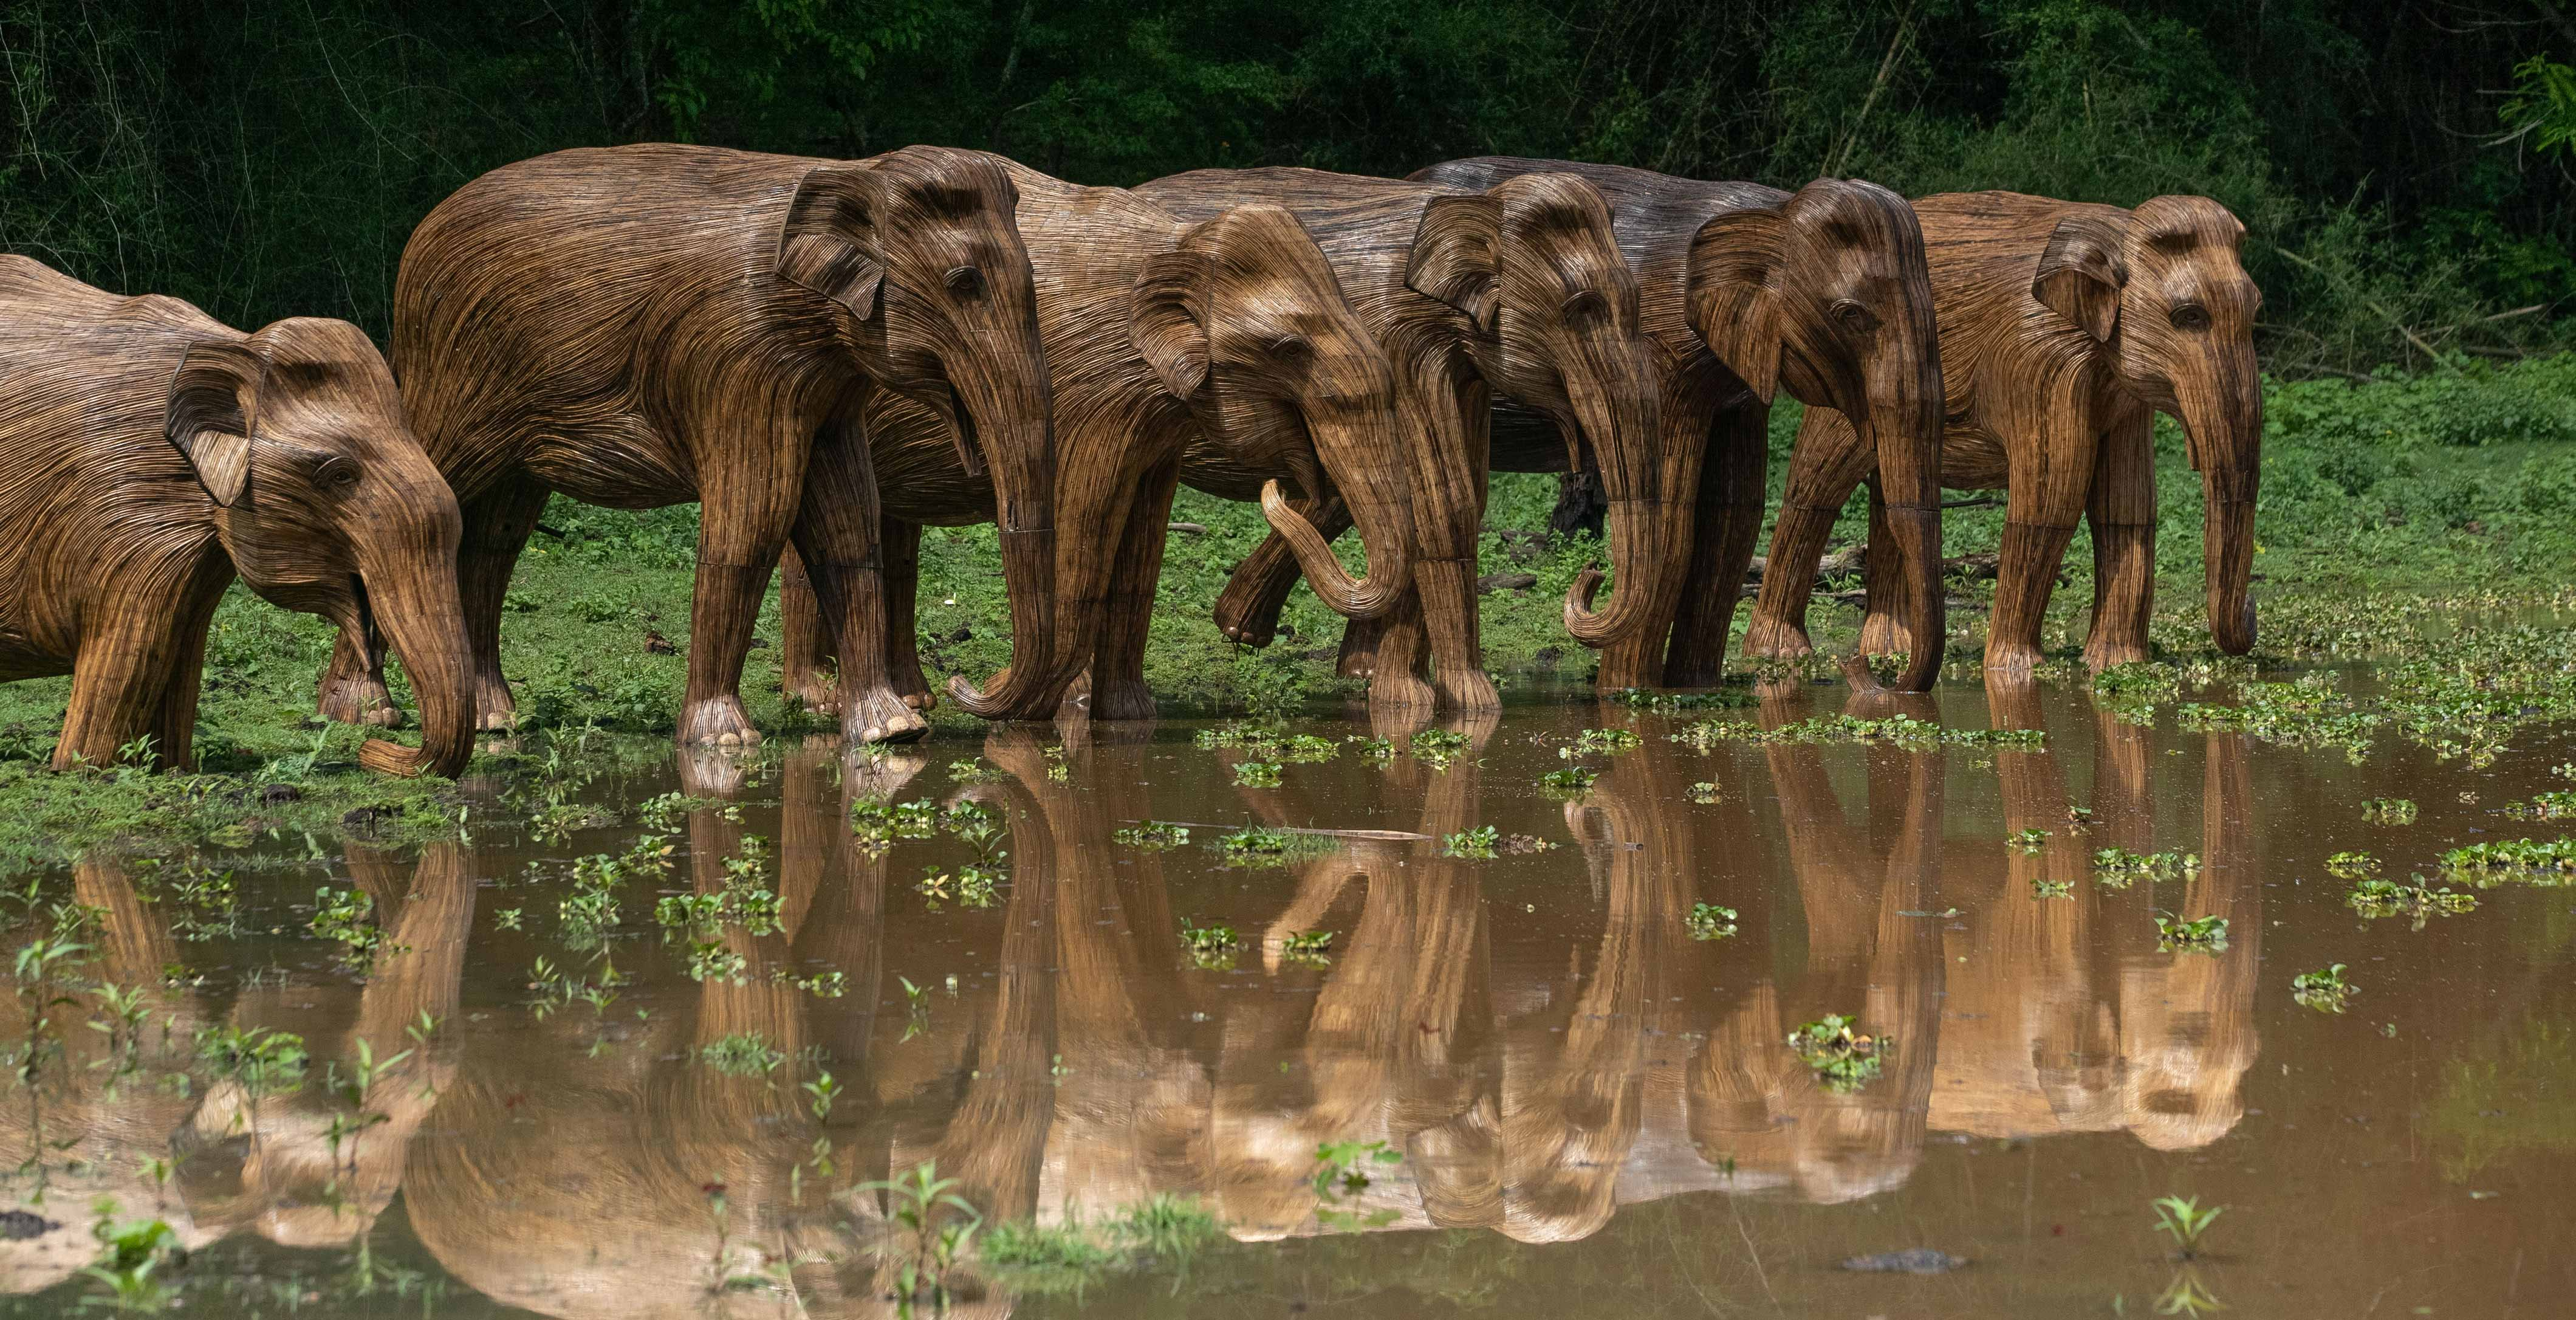 The Travelling Band of Elephants